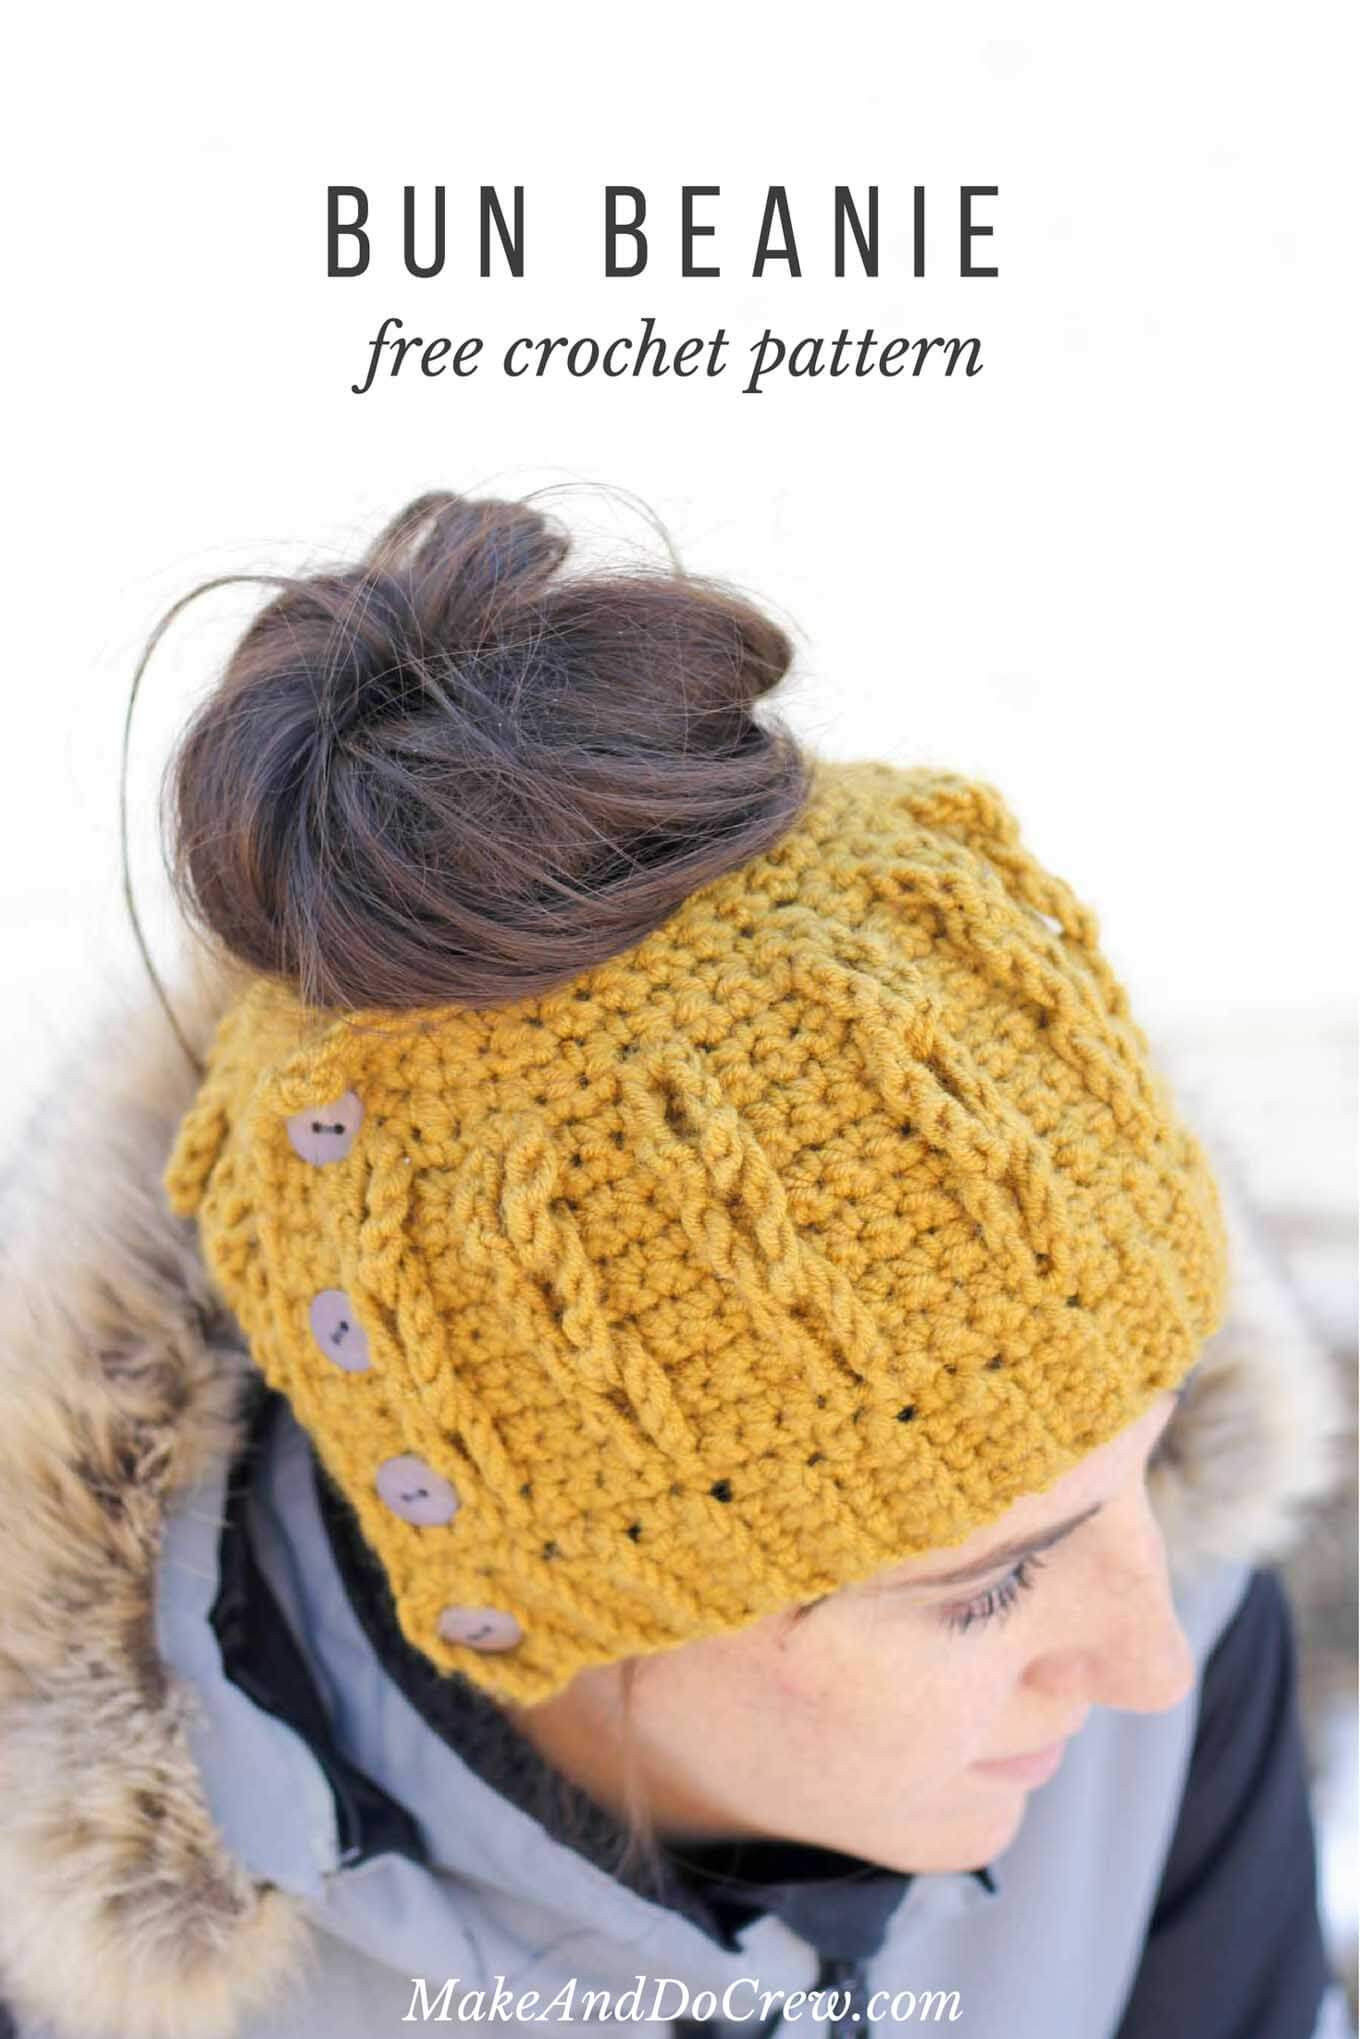 Beautiful Crochet Bun Beanie with Faux Cables Free Pattern and Bun Beanie Crochet Pattern Of Charming 42 Pics Bun Beanie Crochet Pattern